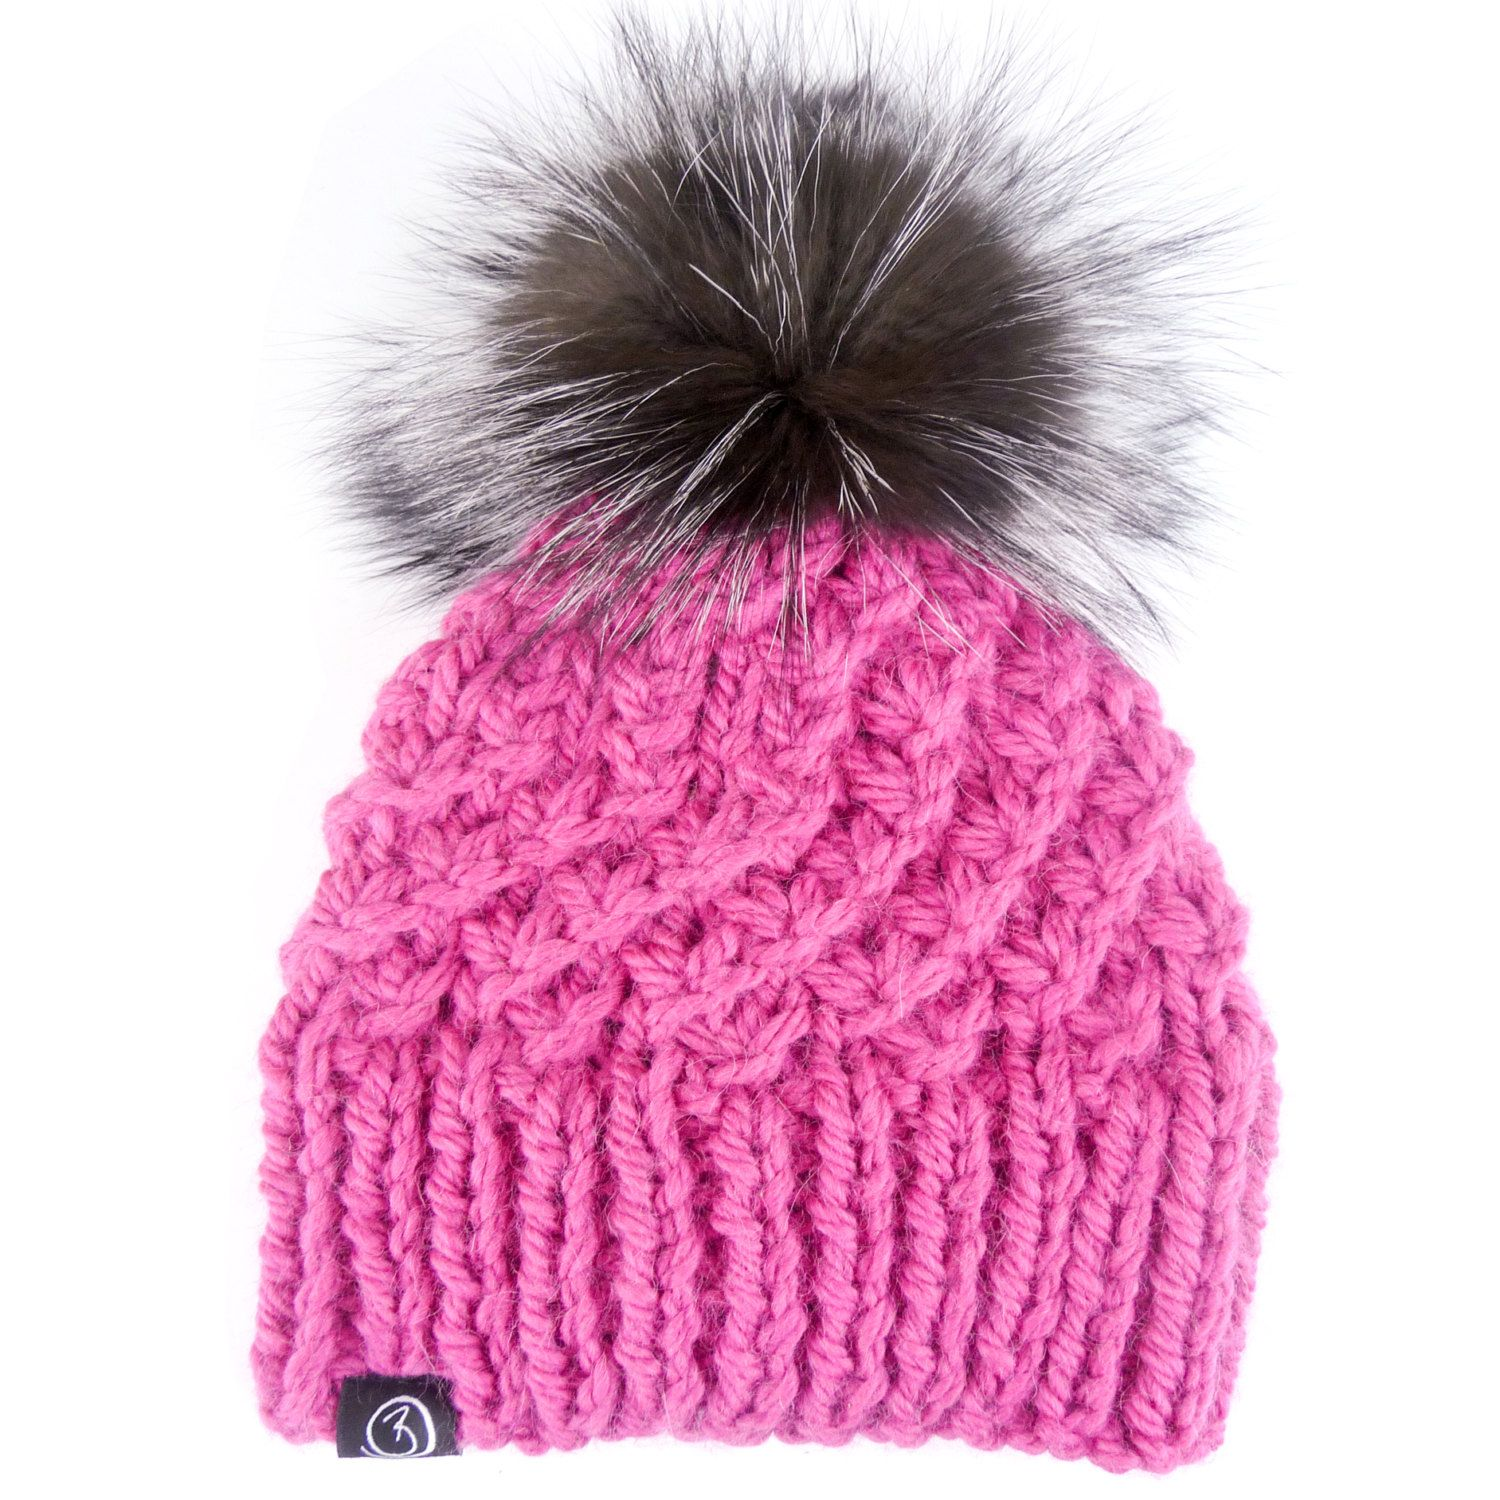 9af60a29ab7 Cerise with a Super Deluxe Silver Fox Fur Pom Pom by BRAVETHELABEL on Etsy